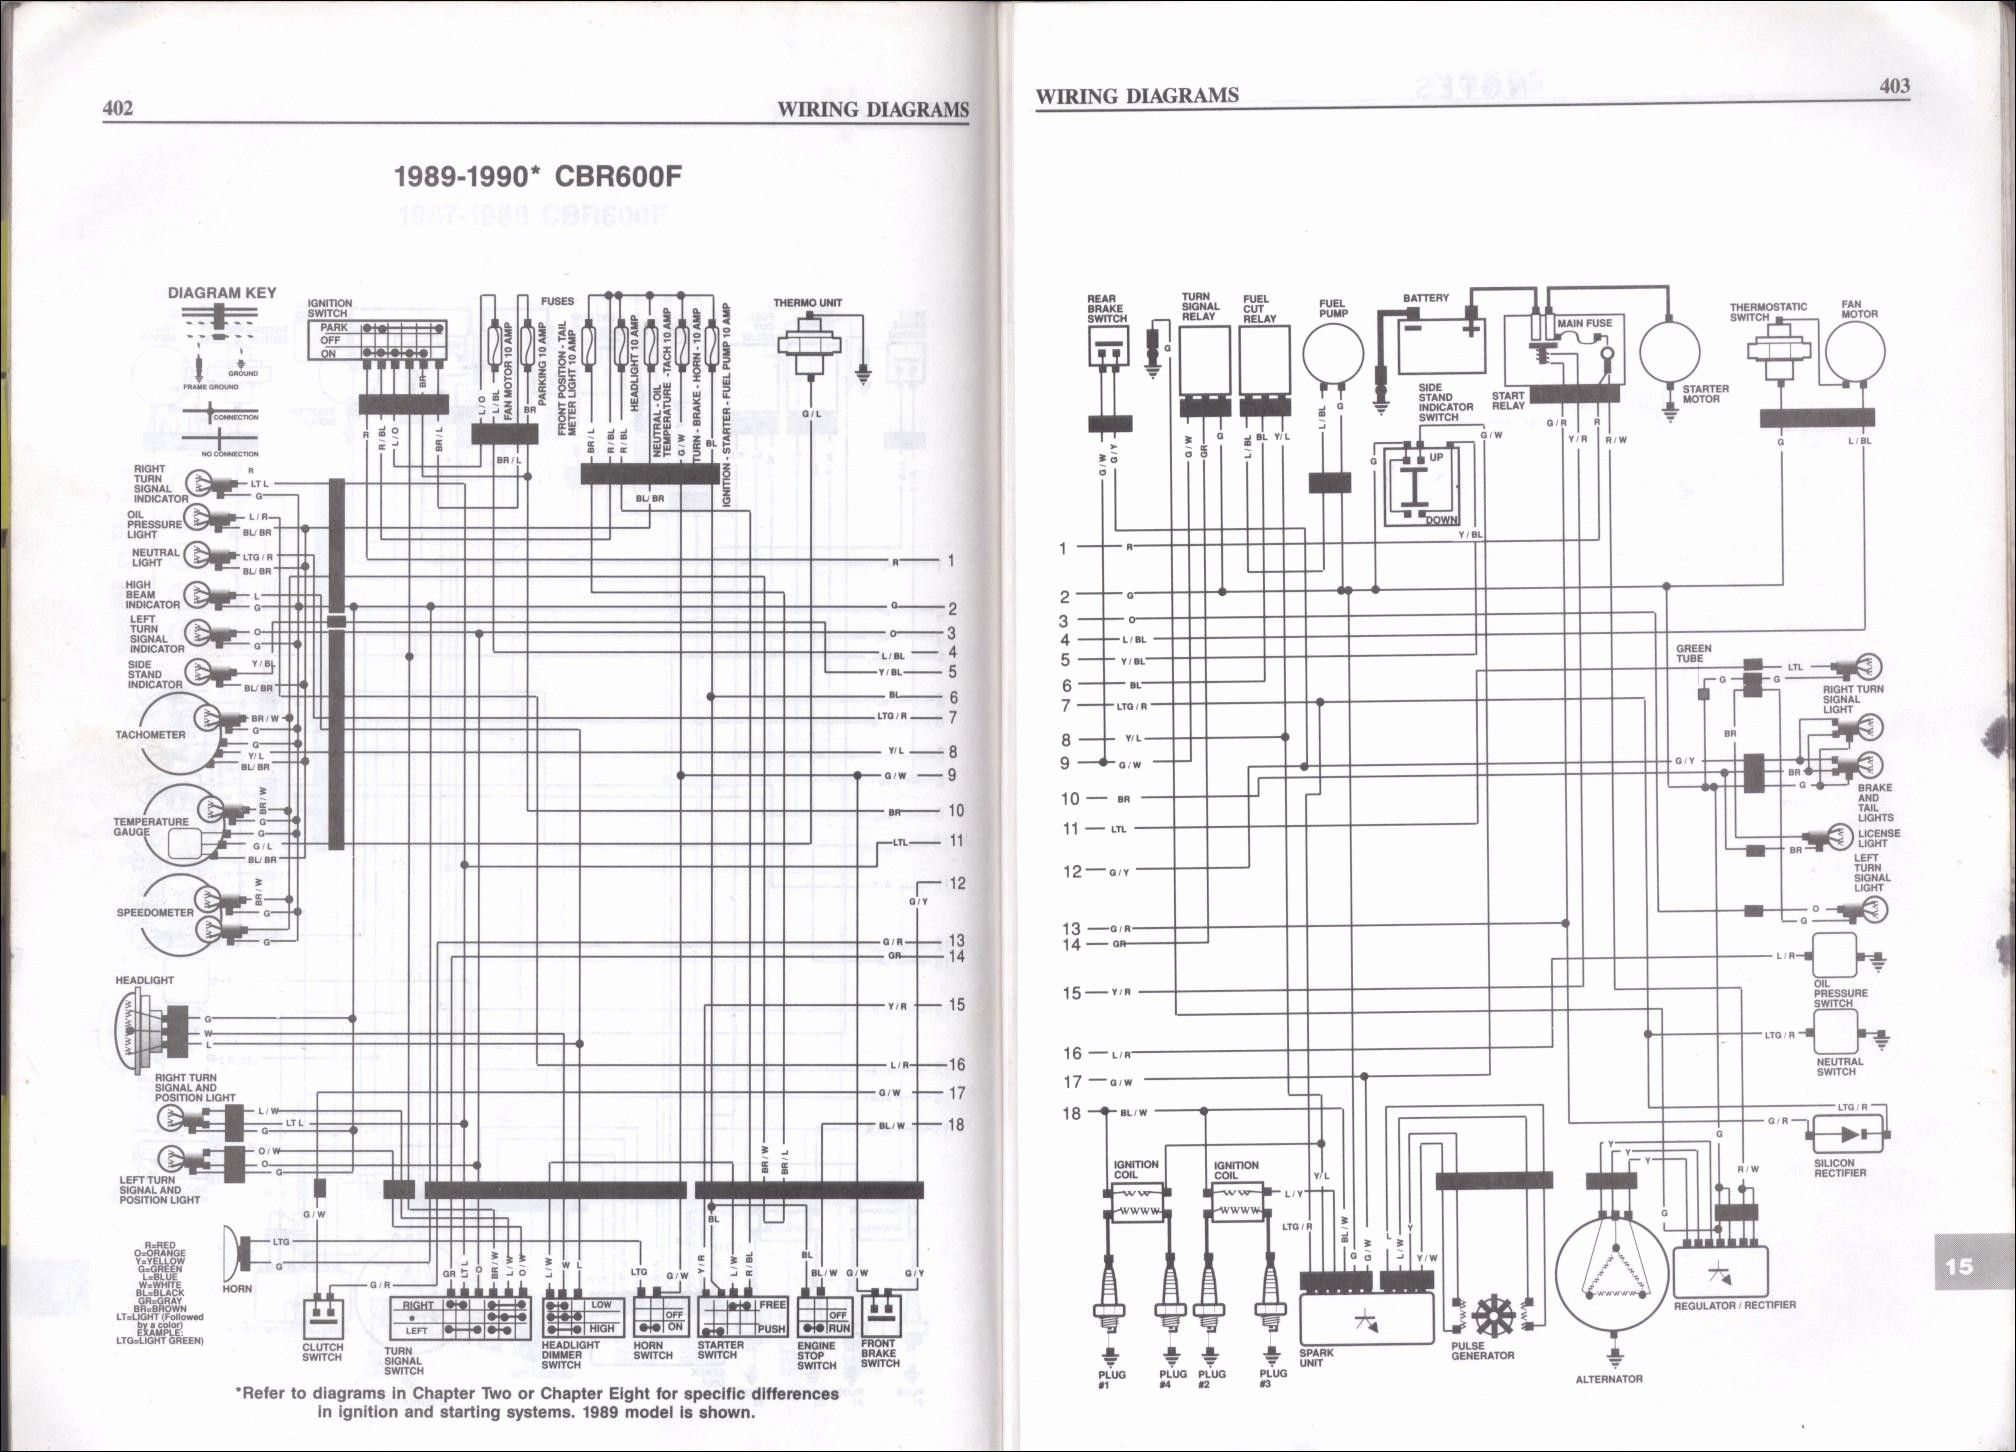 New Wiring Diagram Program #diagram #wiringdiagram #